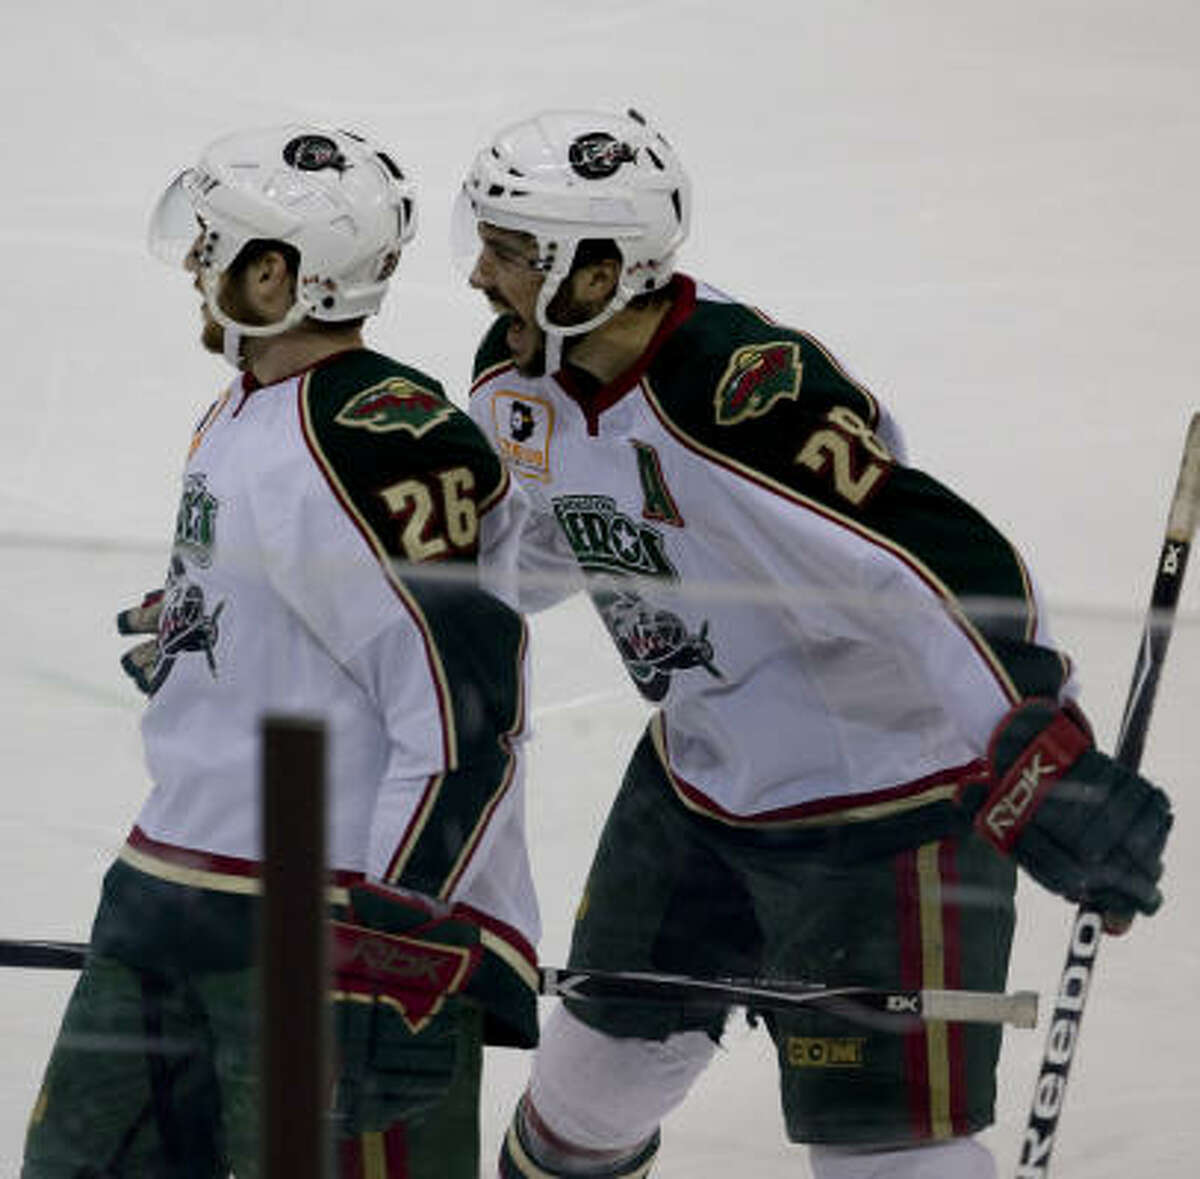 Aeros' Brandon Rogers (28) celebrates with Maxim Noreau (26) after scoring in the first period.